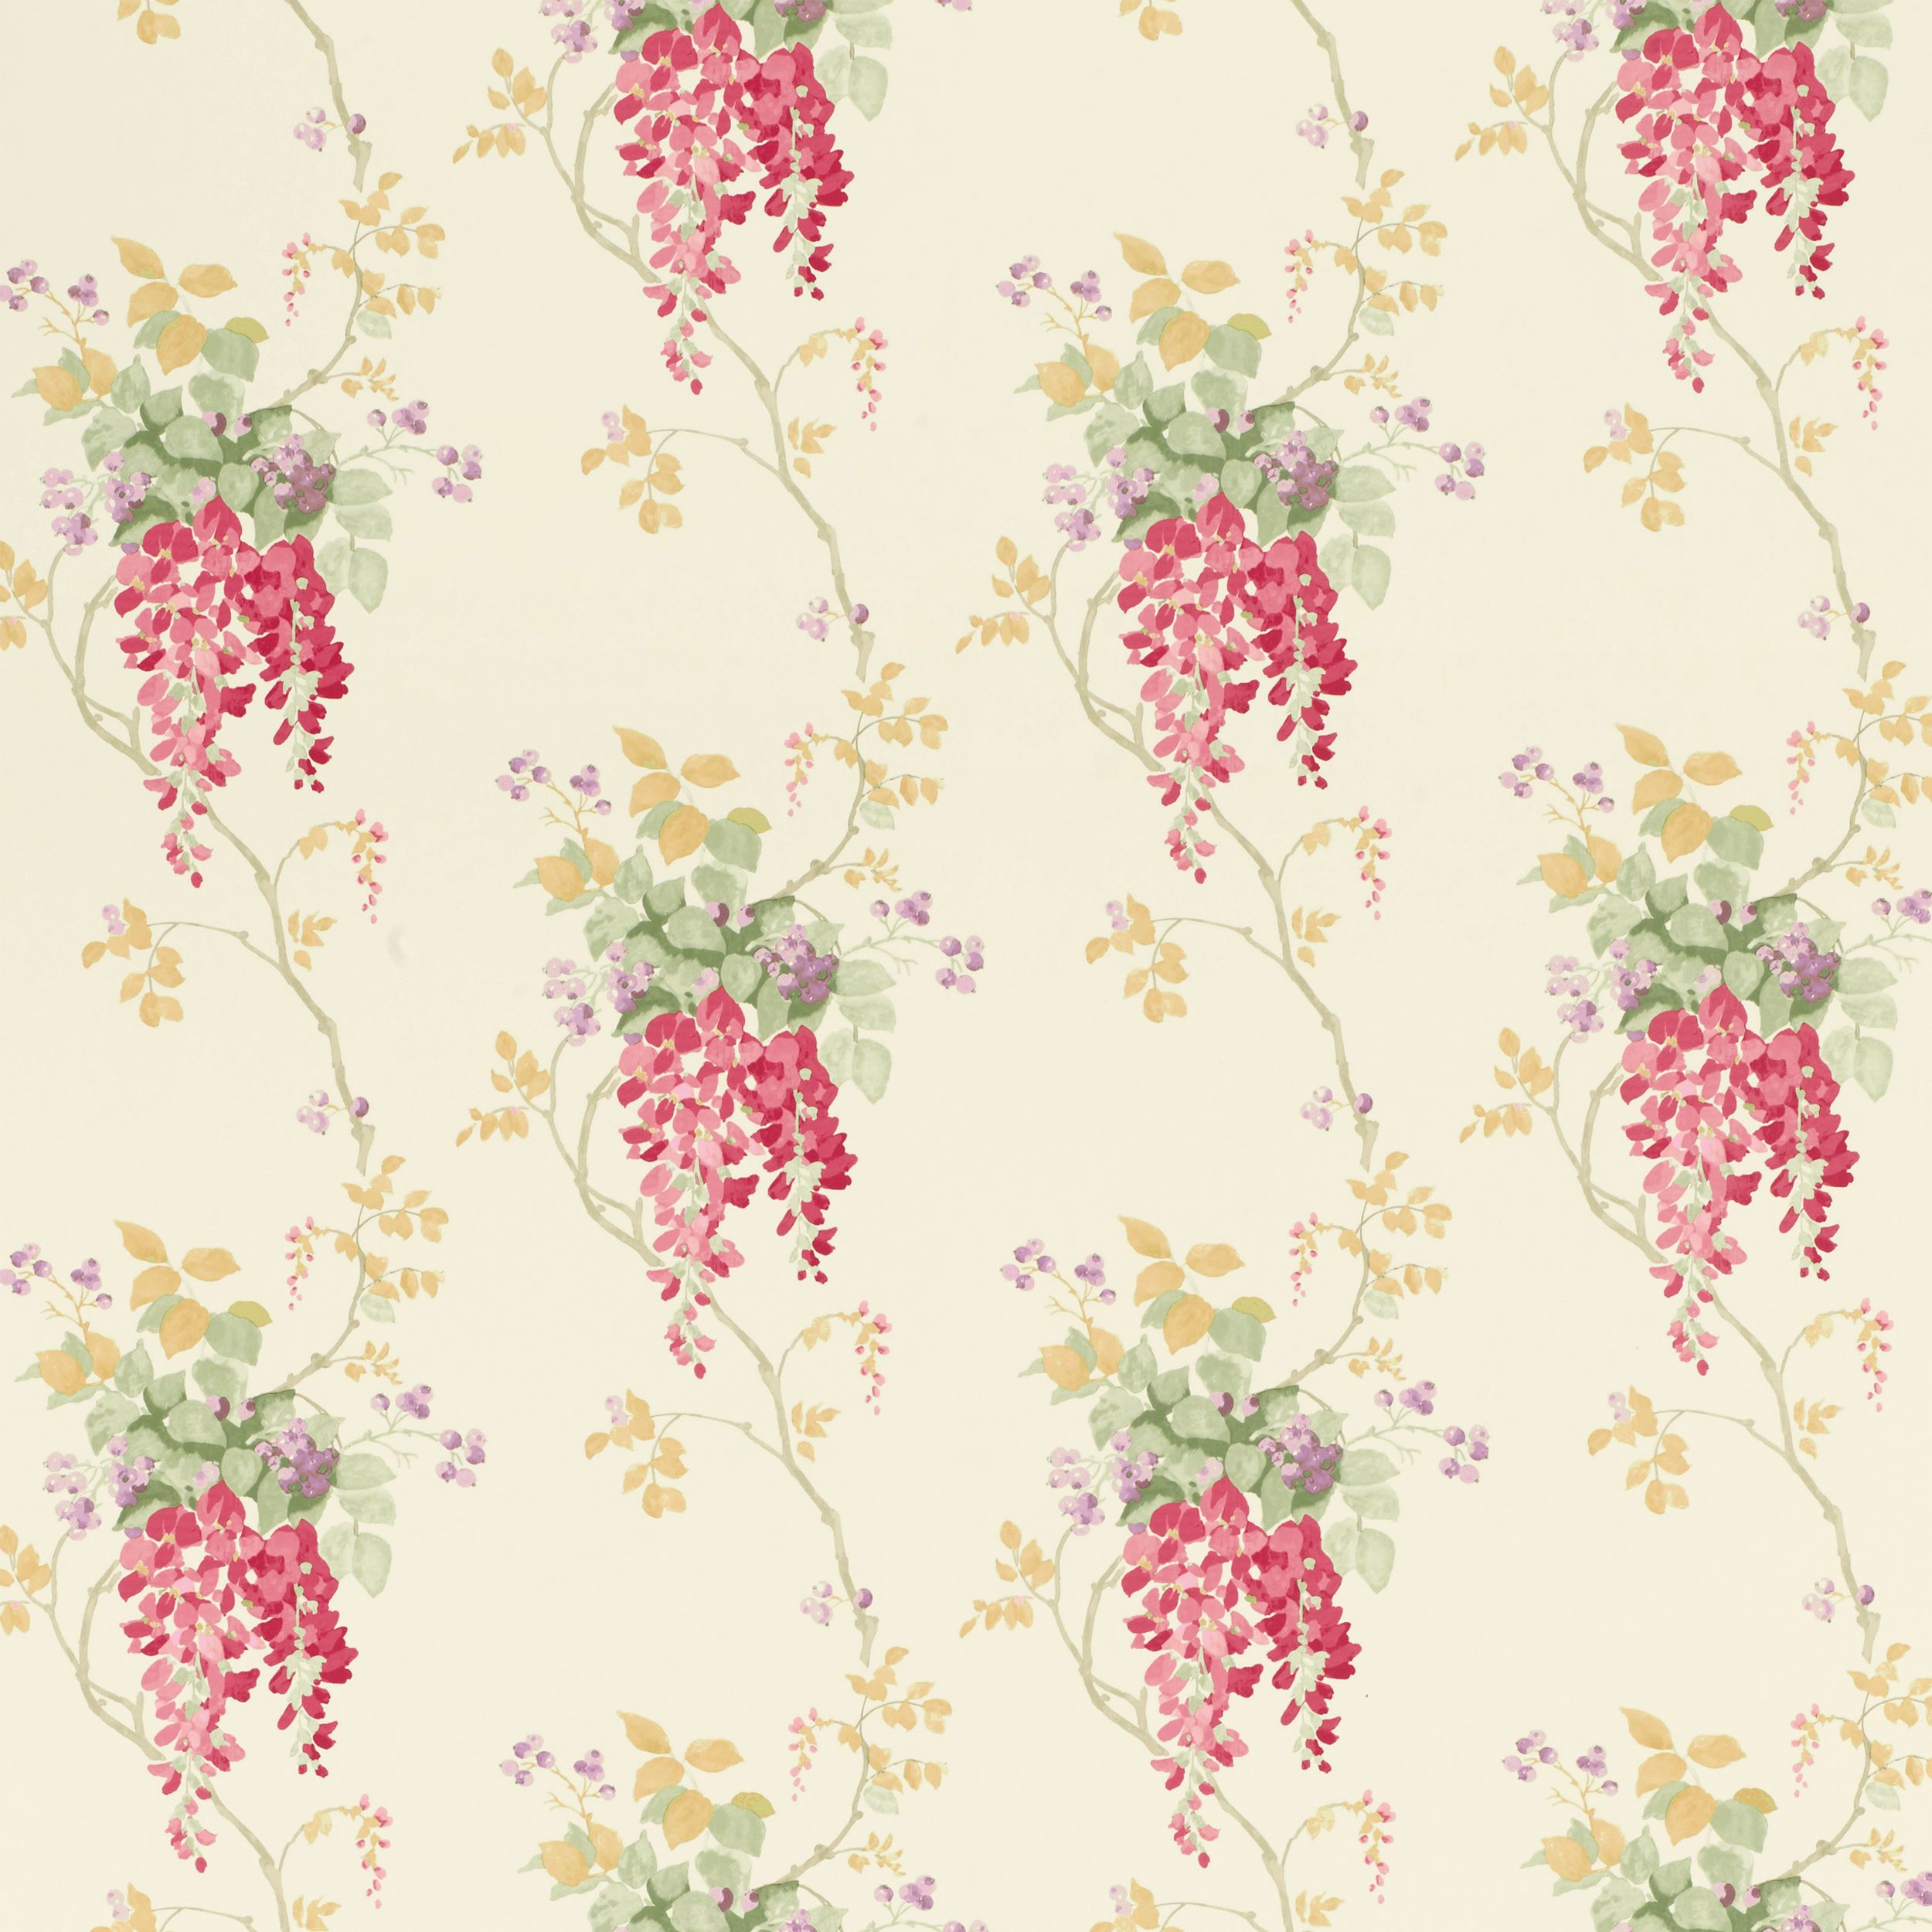 Wisteria Cranberry Wallpaper At Laura Ashley Floral Wallpaper